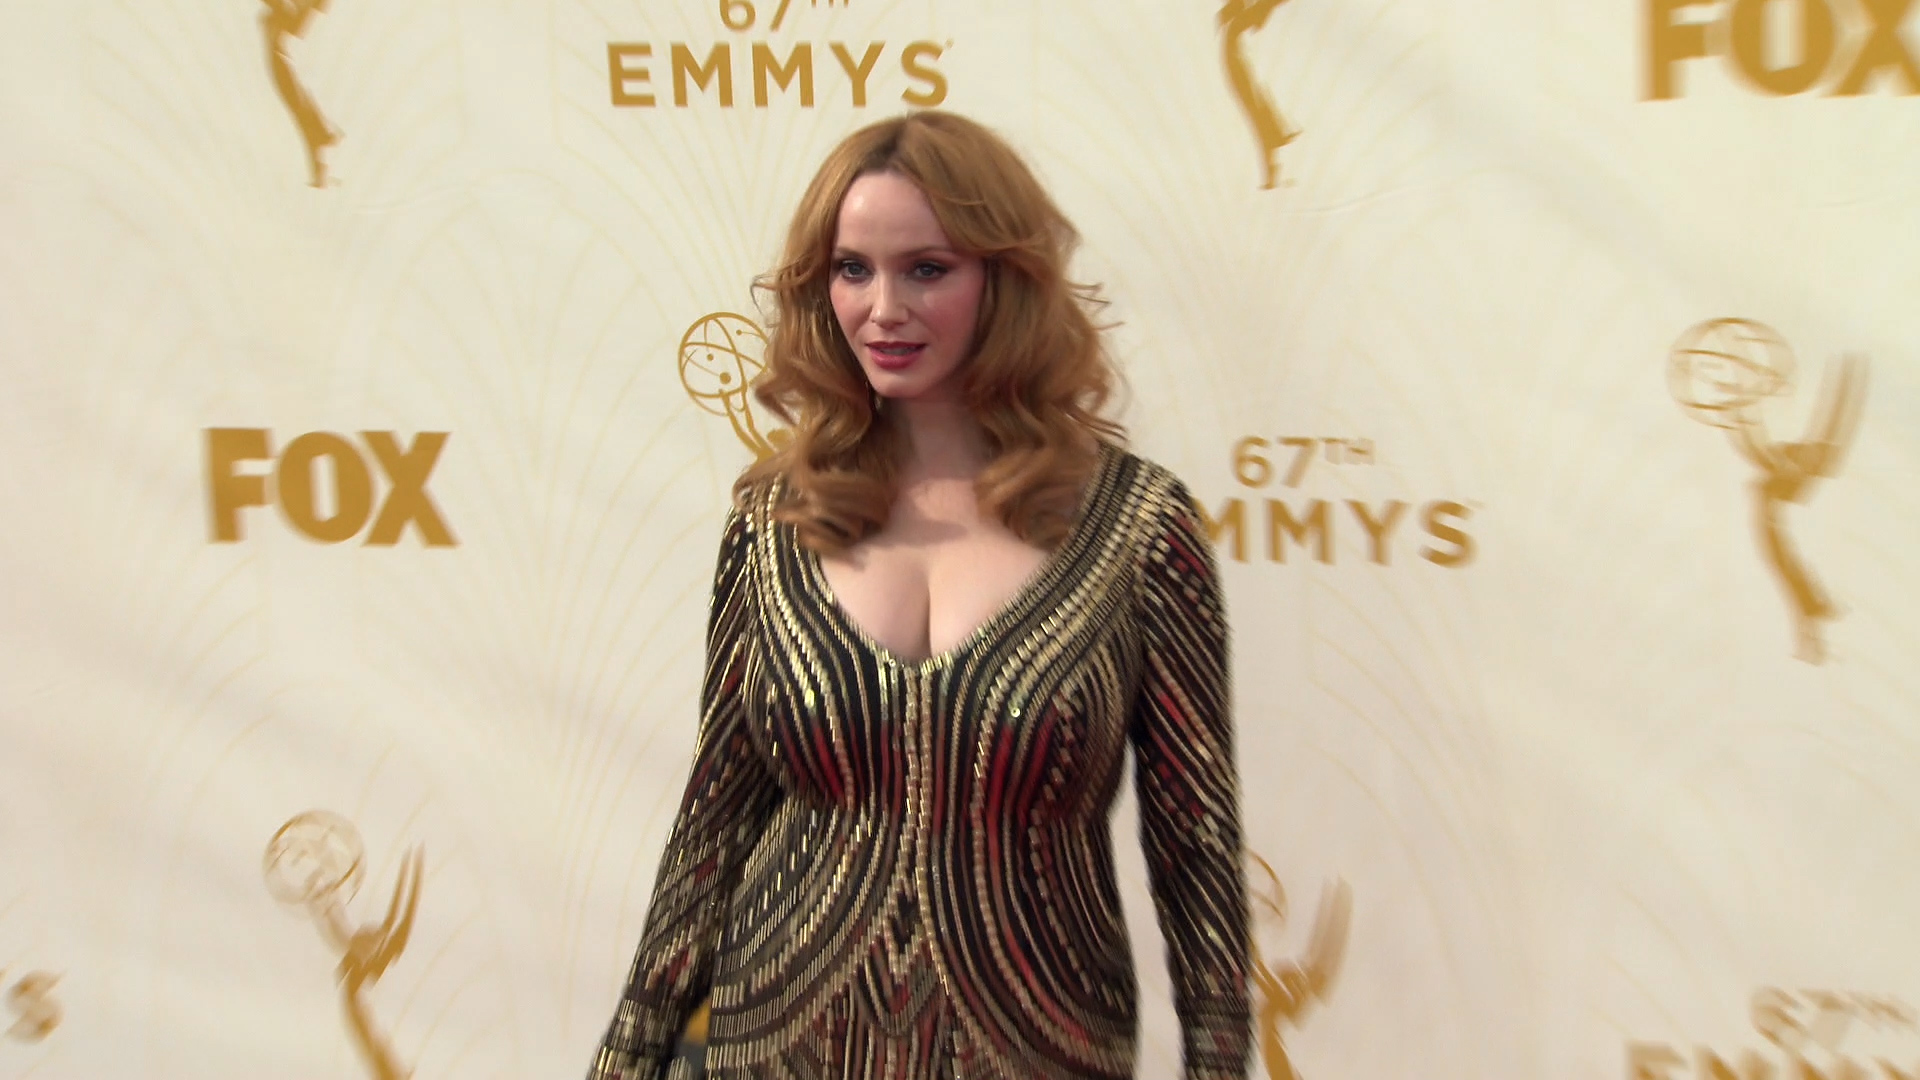 Emmys 2015 Fashion bloggers style tv